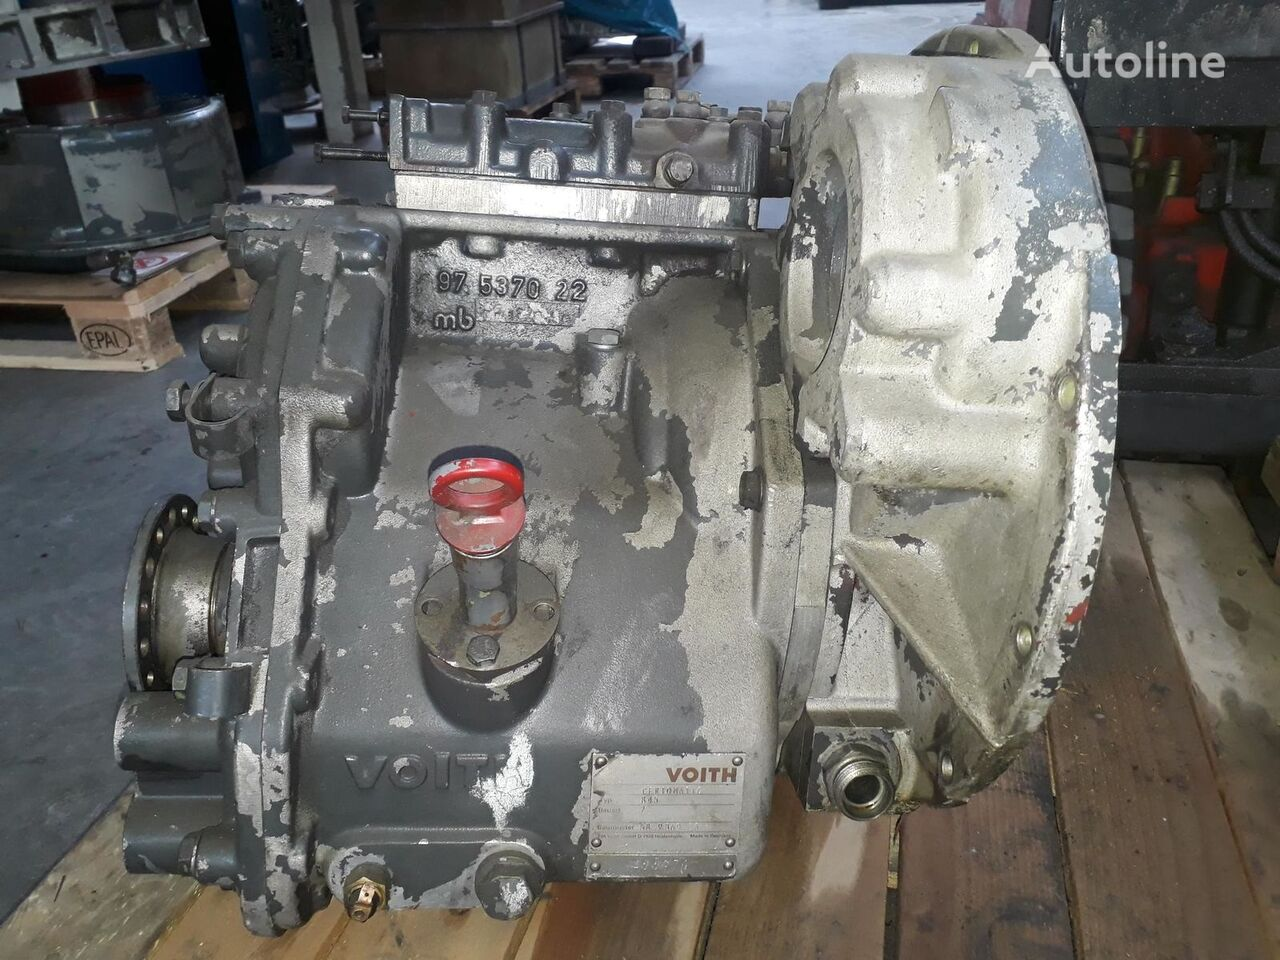 Voith 845 gearbox for Mulag tractor unit